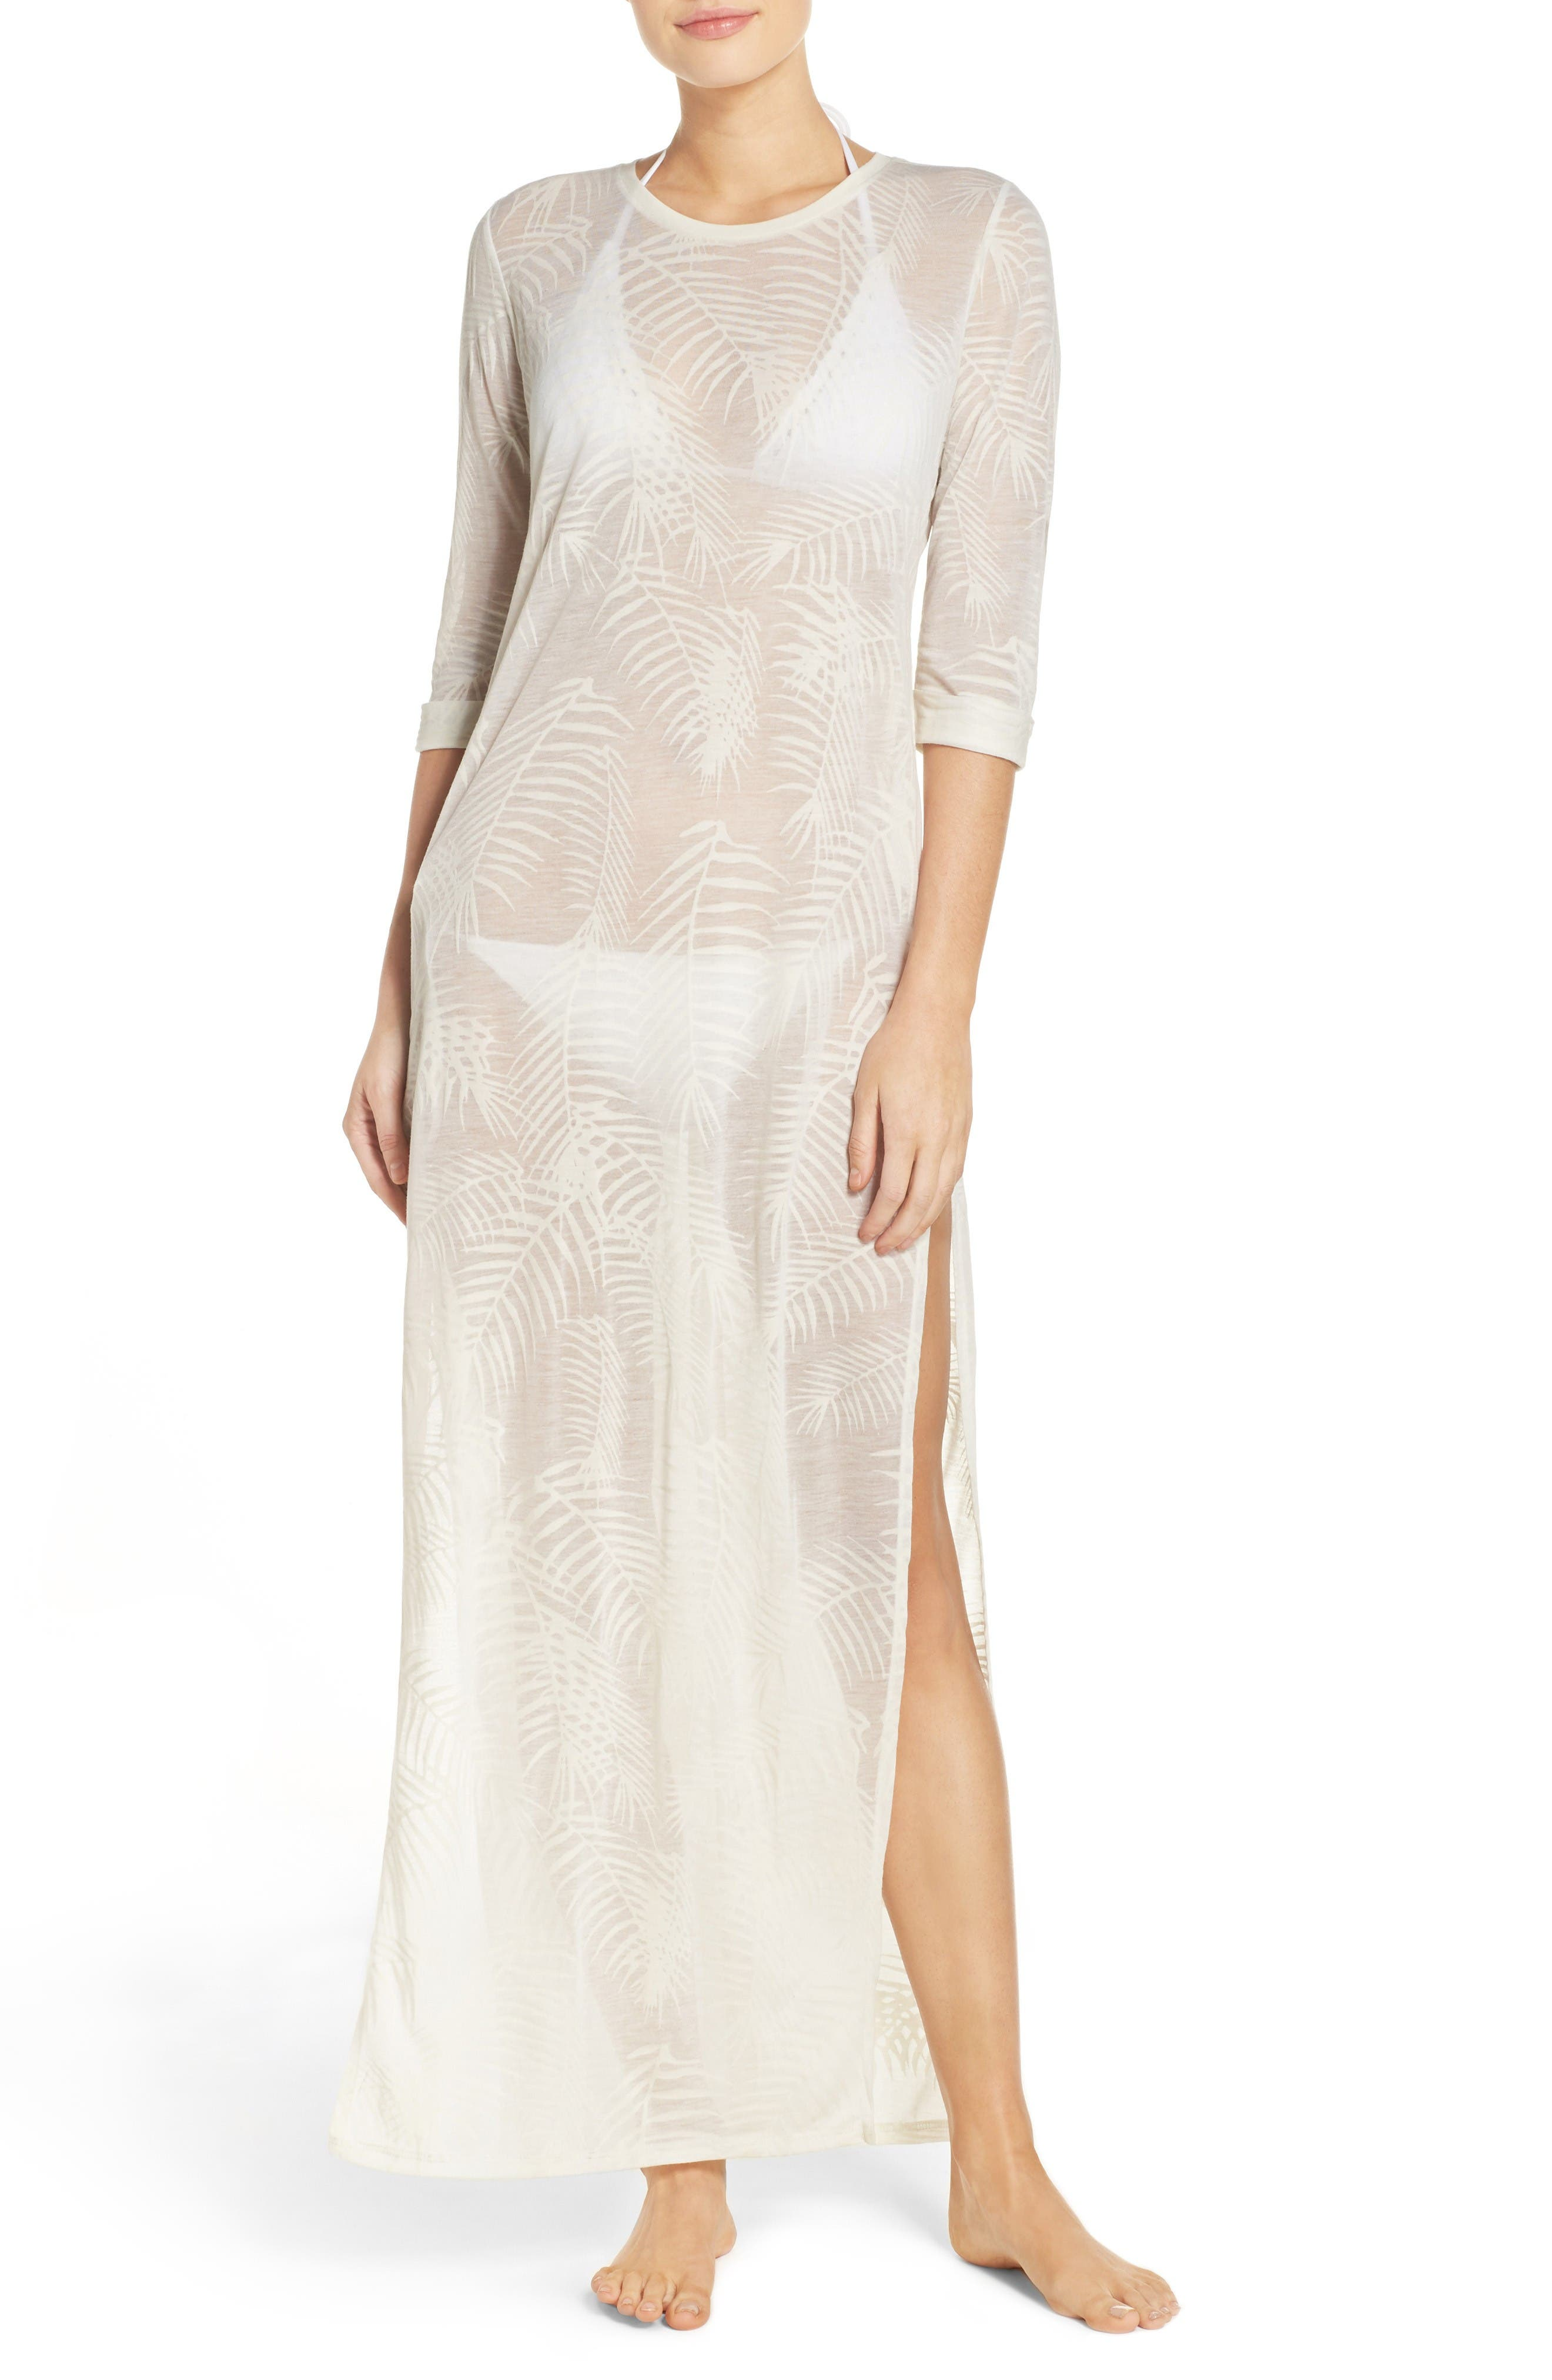 Main Image - TAVIK Finley Cover-Up Maxi Dress